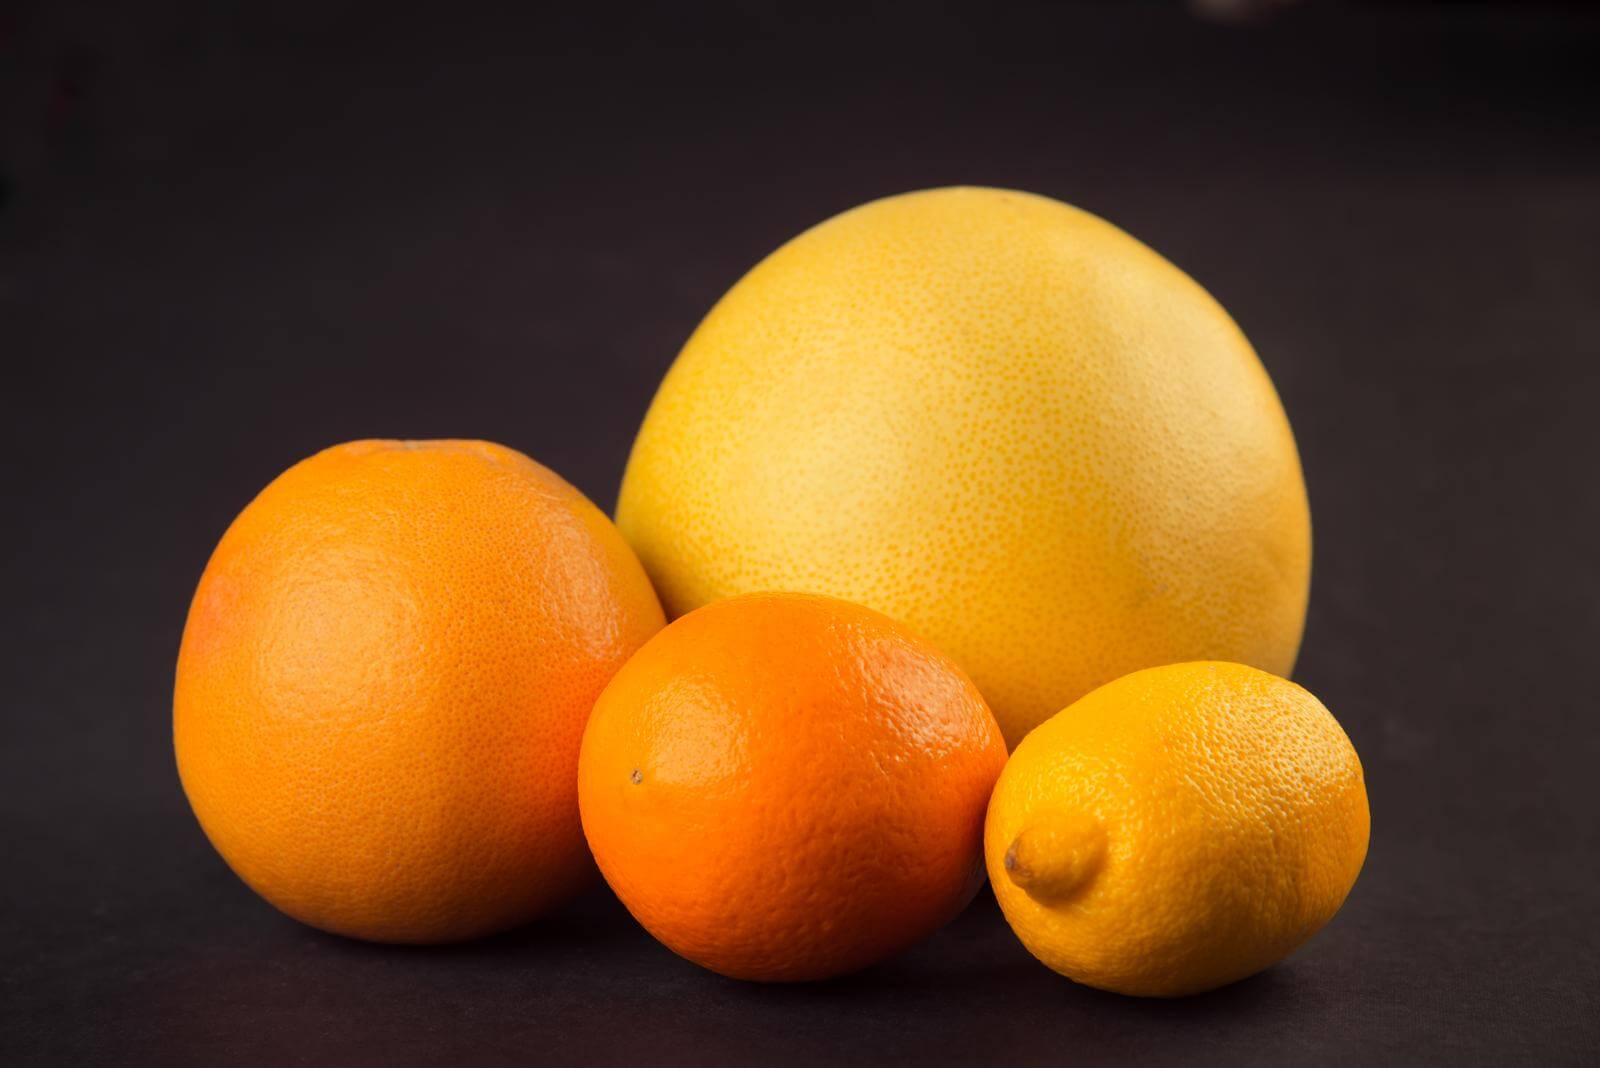 Citrus fruits are rich in citric acid; this same acid can be employed in pH balancing tampons. Some species of Lactobacillus bacteria secrete lactic acid; which also may be used in pH balancing feminine products. Keeping vaginal pH at a healthy, acidic level is important for allaying yeast infections.